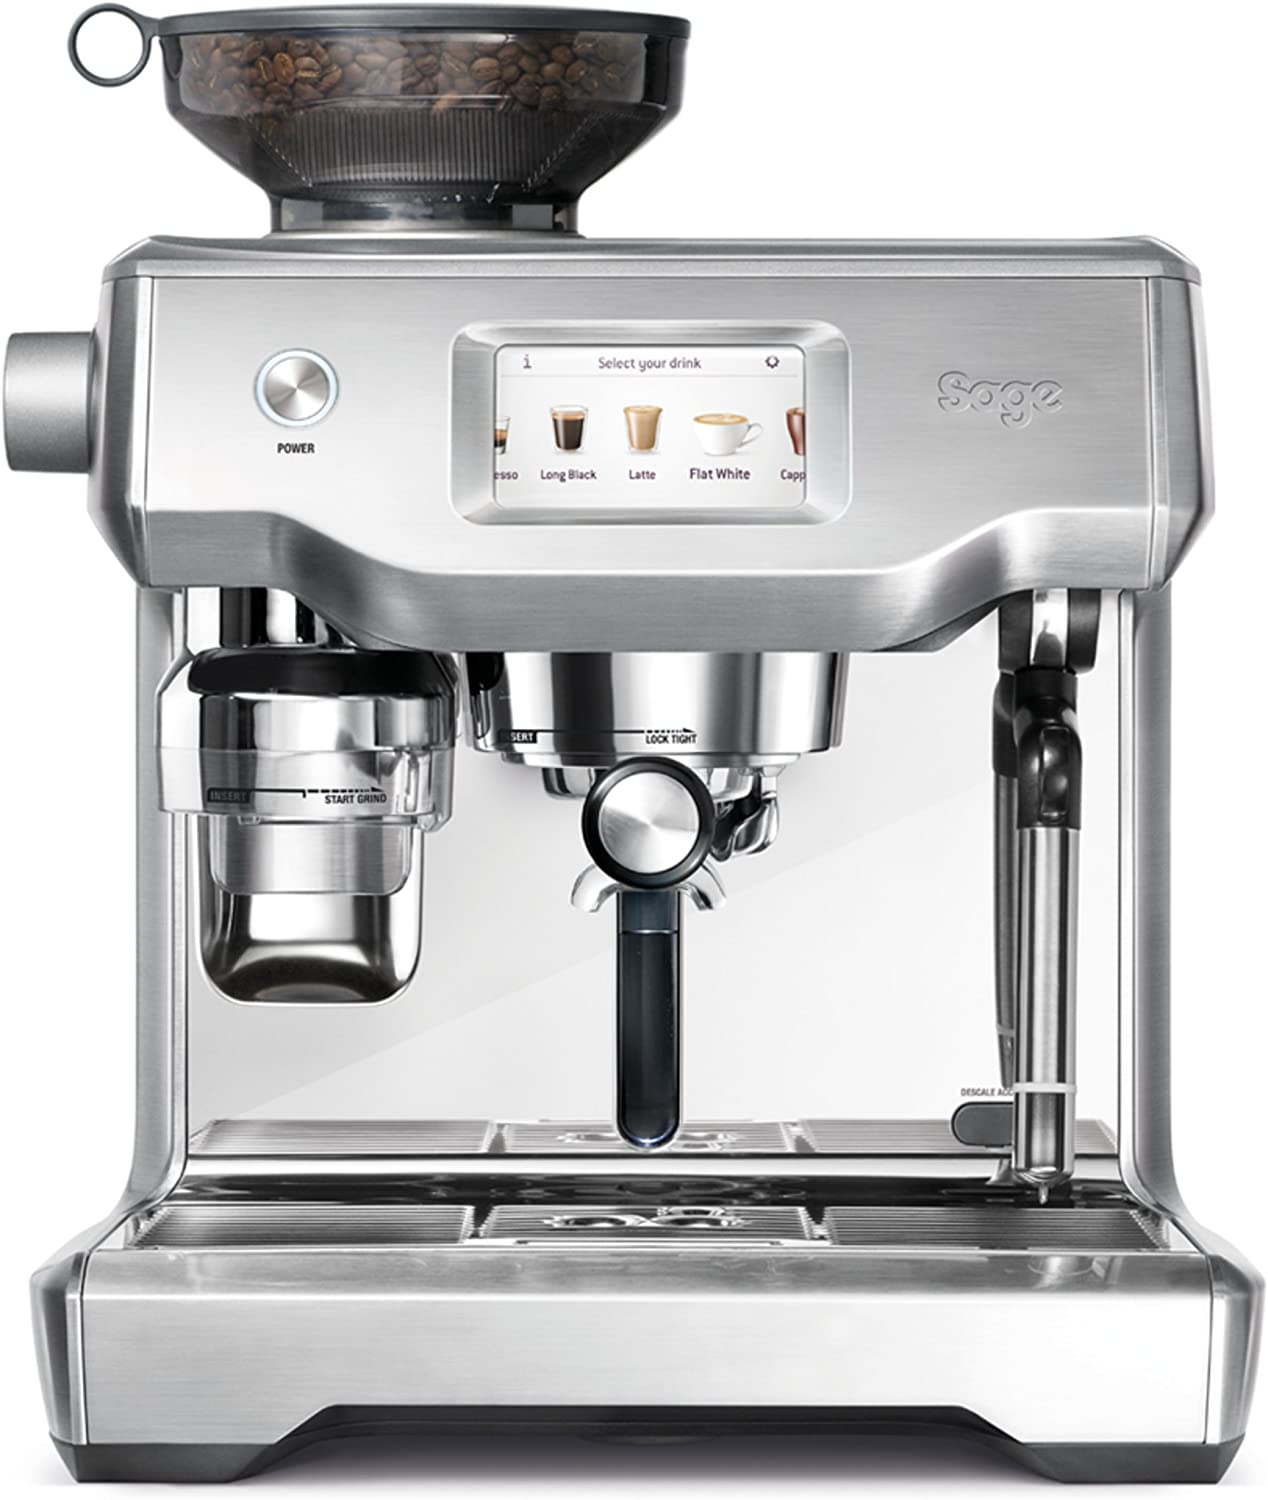 SAGE SES990 theOracle Touch, Cafetera espresso, Cappuccinatore, 15 Bar, Acero Inoxidable